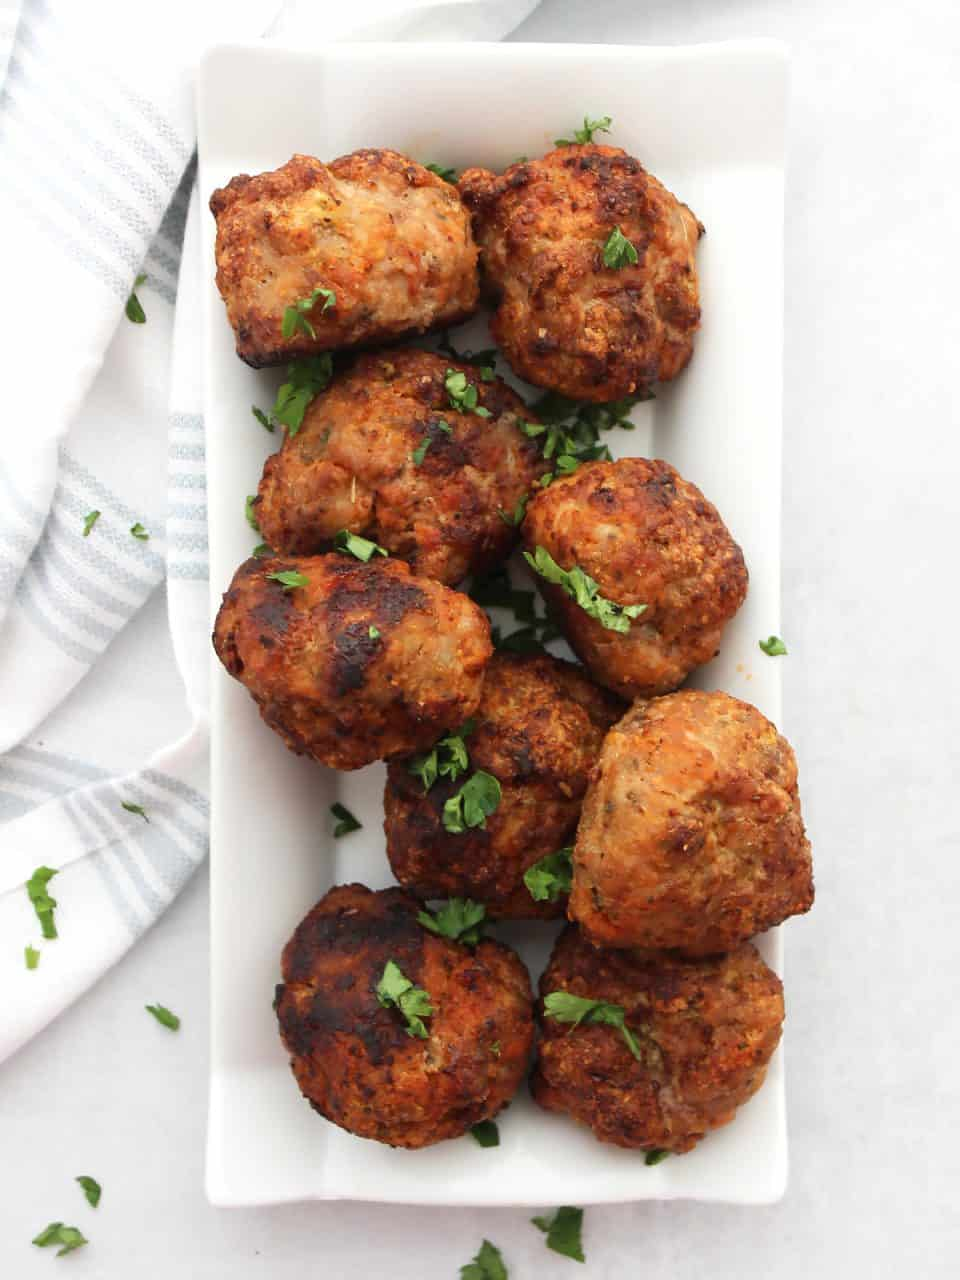 Overhead shot of air fryer turkey meatballs on a plate garnished with fresh parsley.